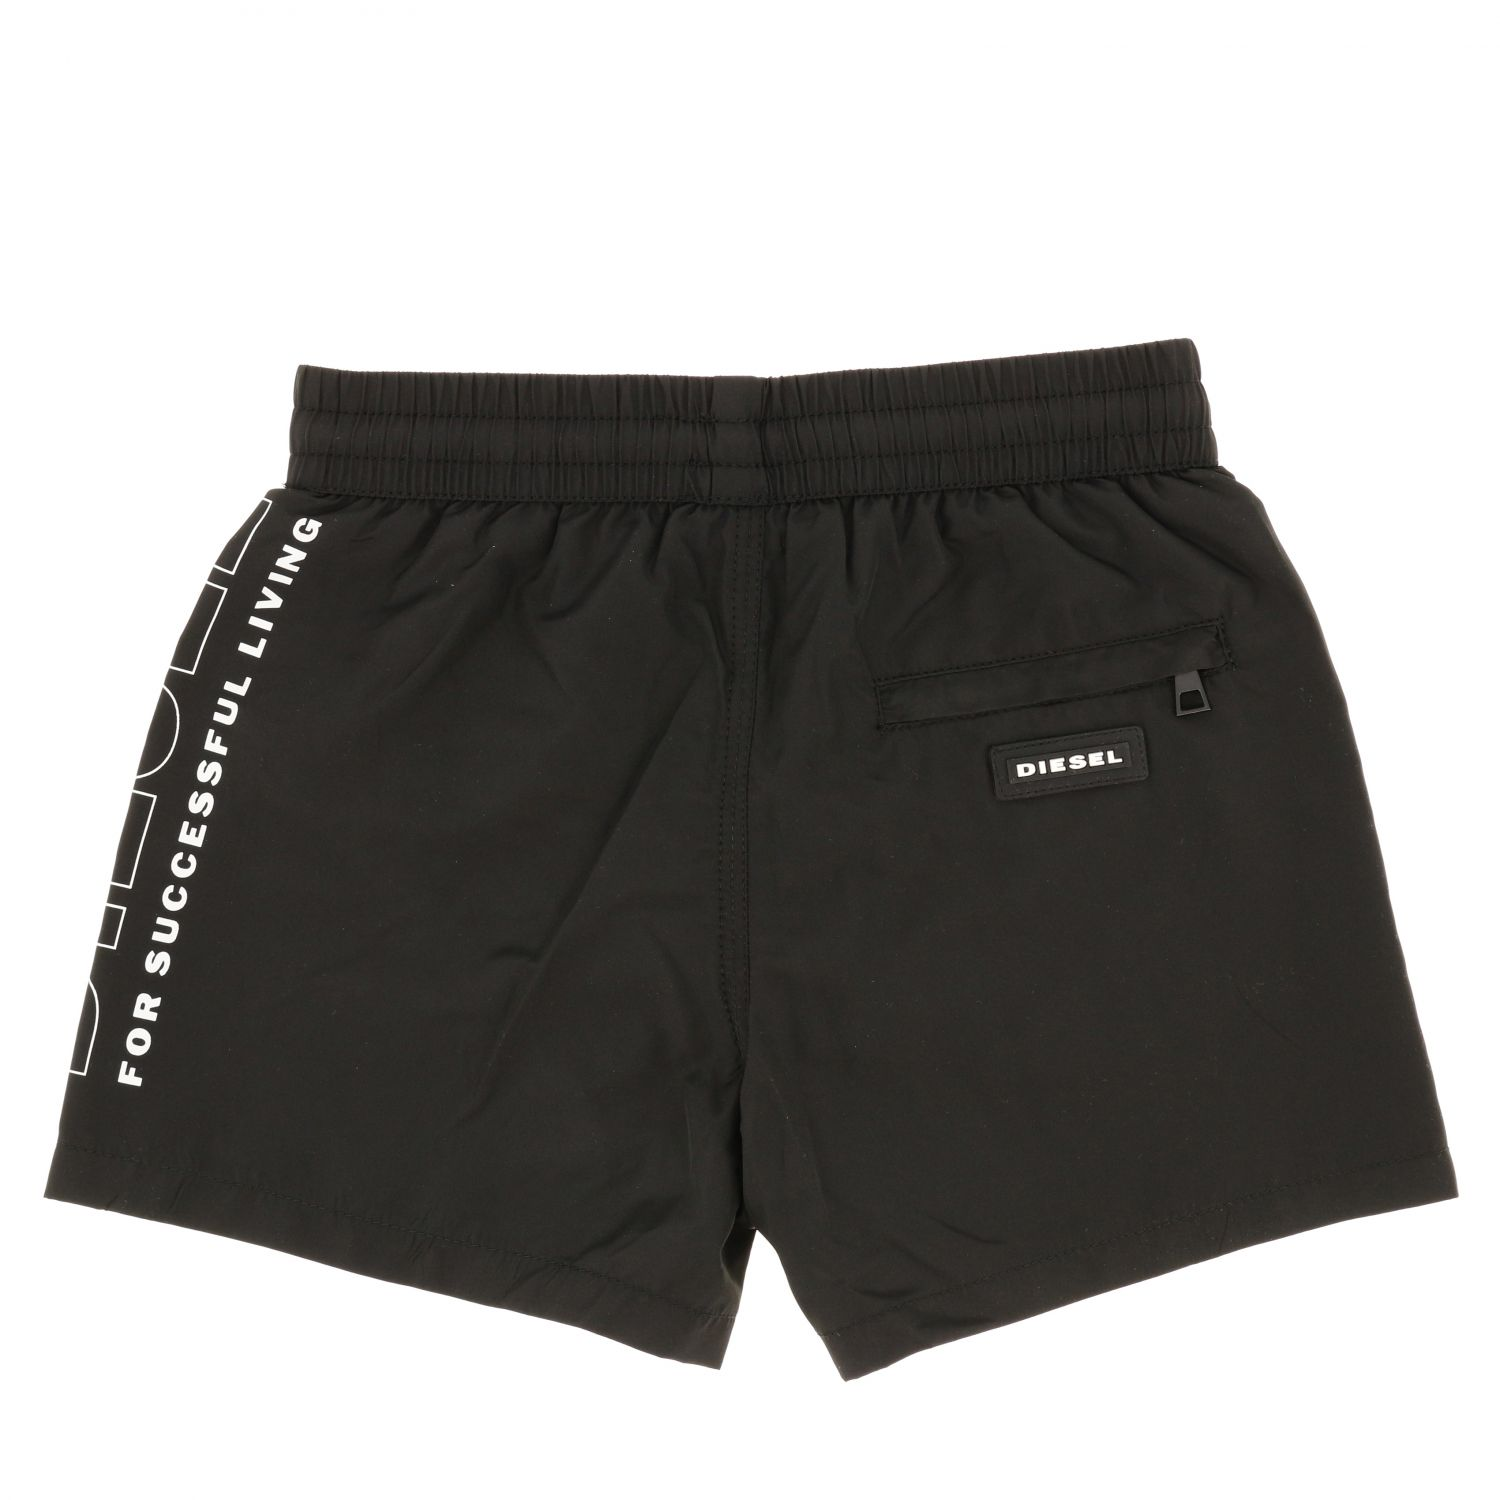 Diesel boxer swimsuit with drawstring and logo black 2